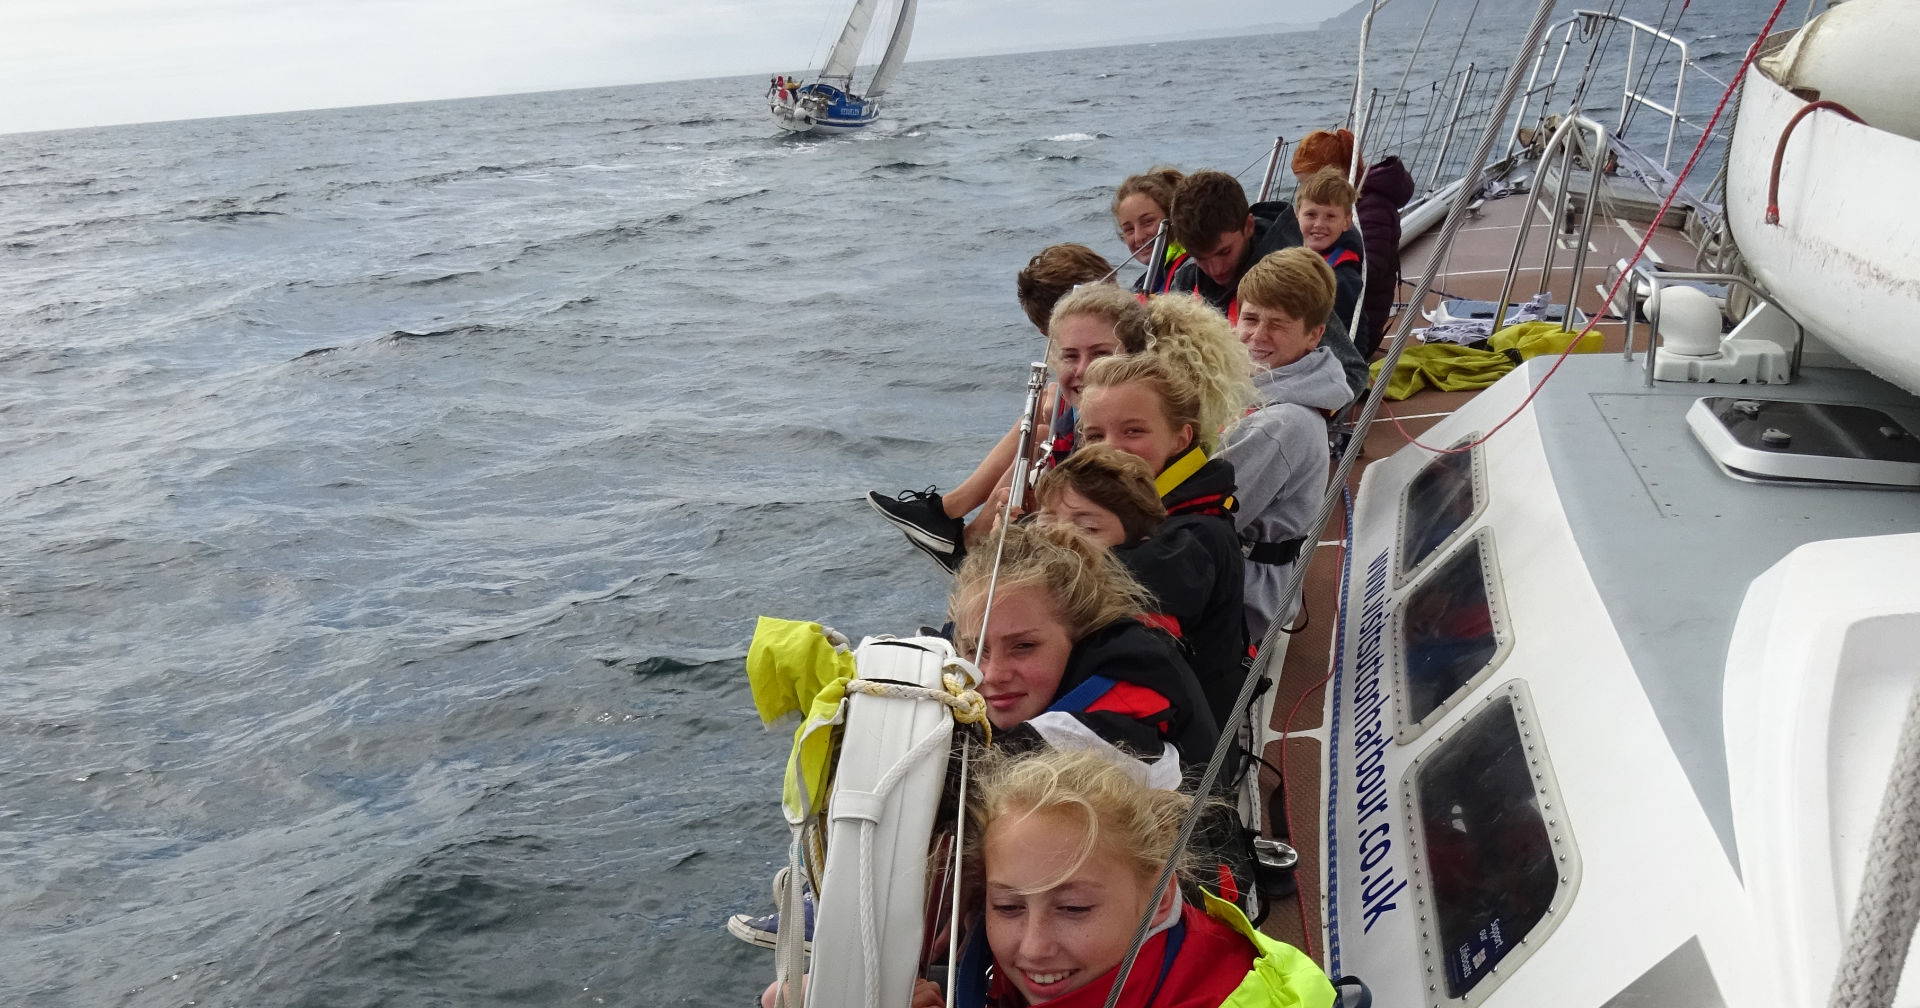 The starting race of the Royal Fowey Regatta, fully funded by POFROC, free voyage for local Fowey young people.